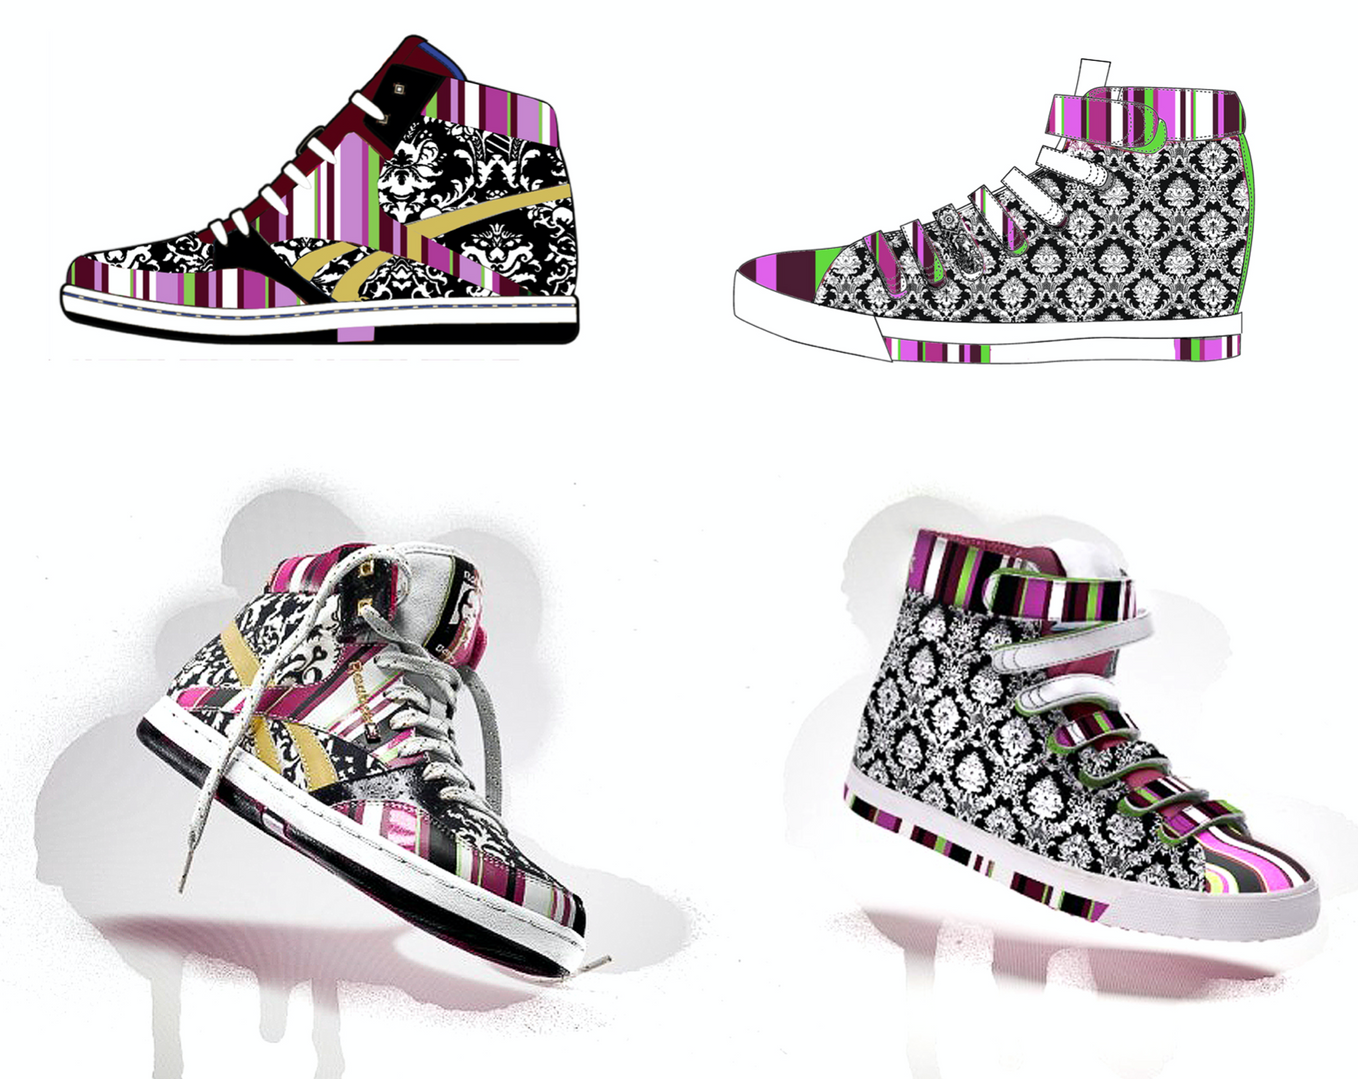 Graphic development & technical design for Rolland Berry: Reebok